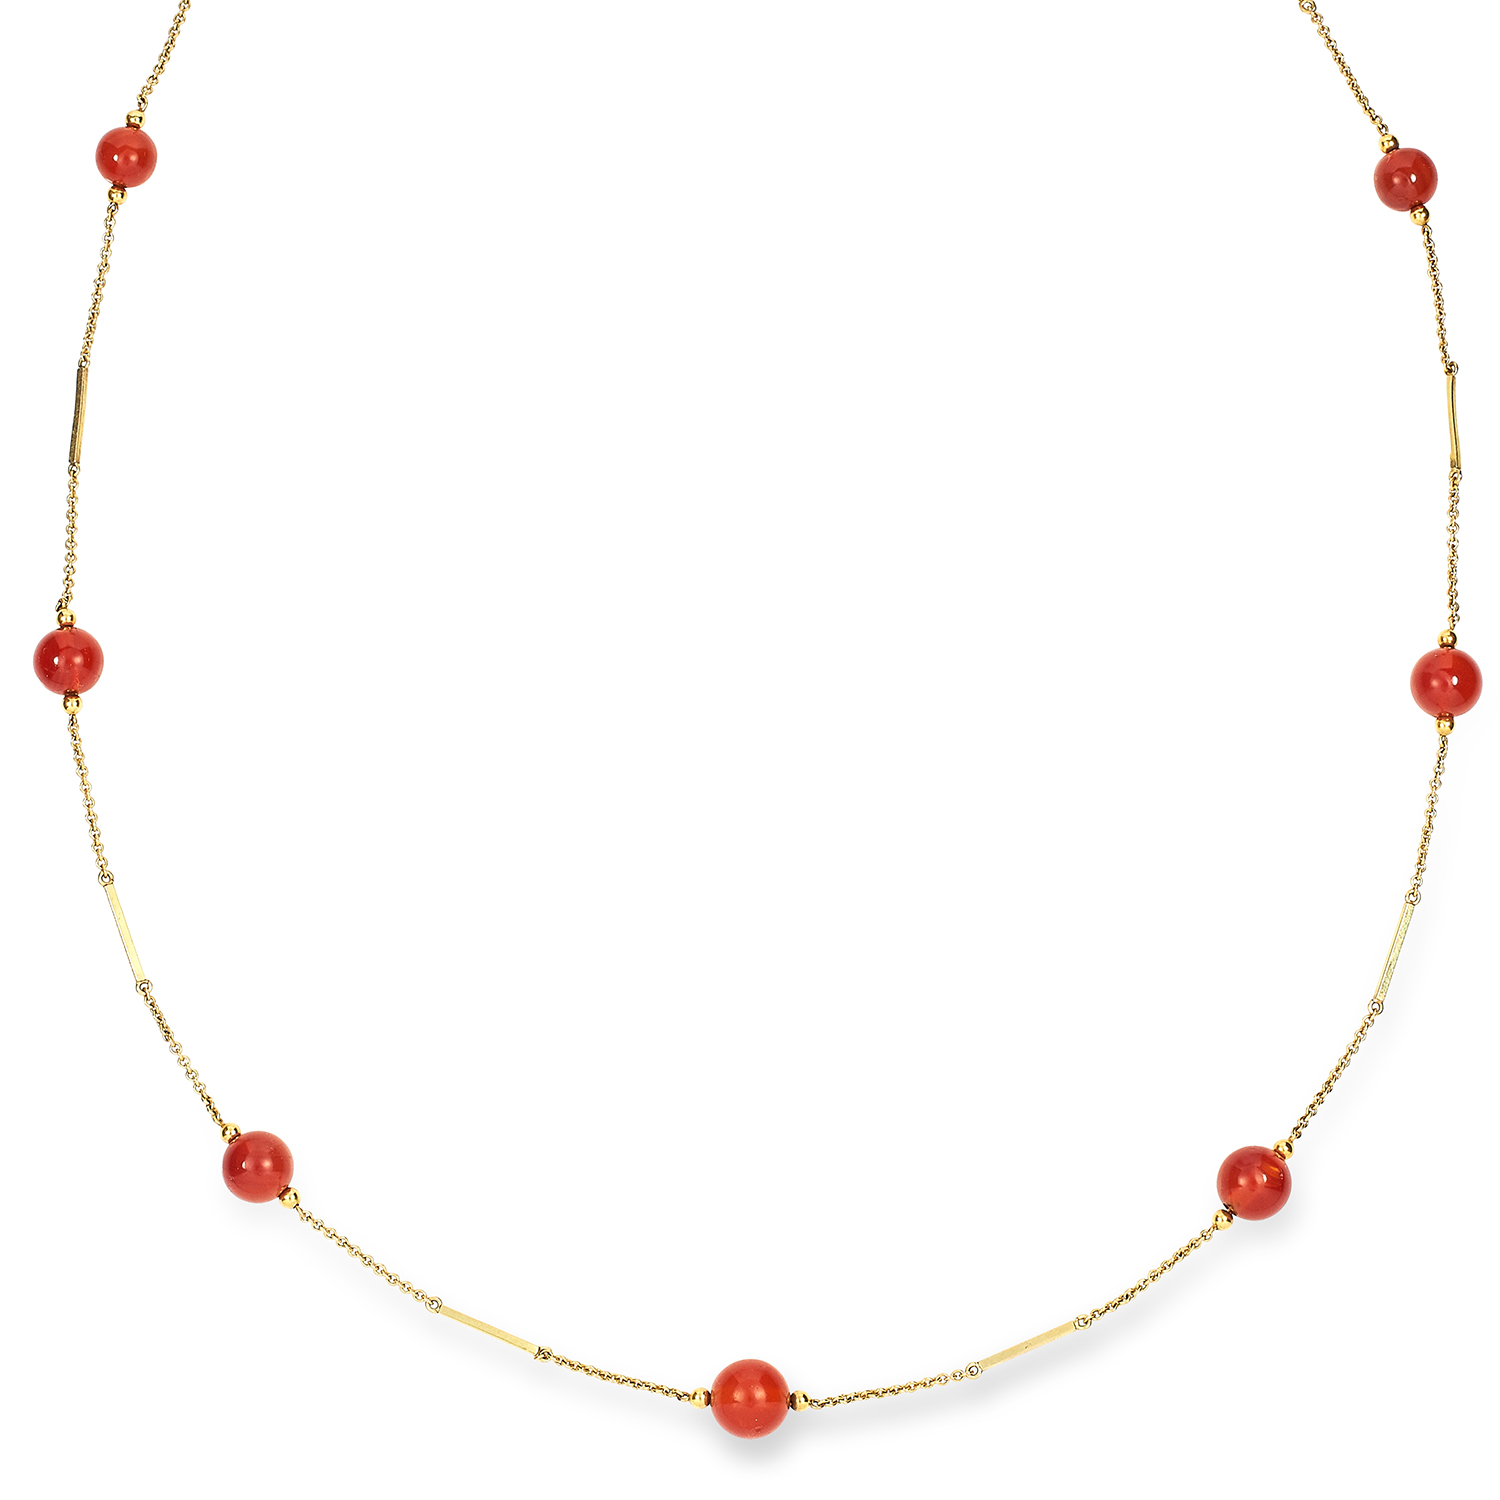 Los 25 - ANTIQUE CARNELIAN SAUTOIR NECKLACE the chain punctuated with graduated carnelian beads, 89.0cm, 15.